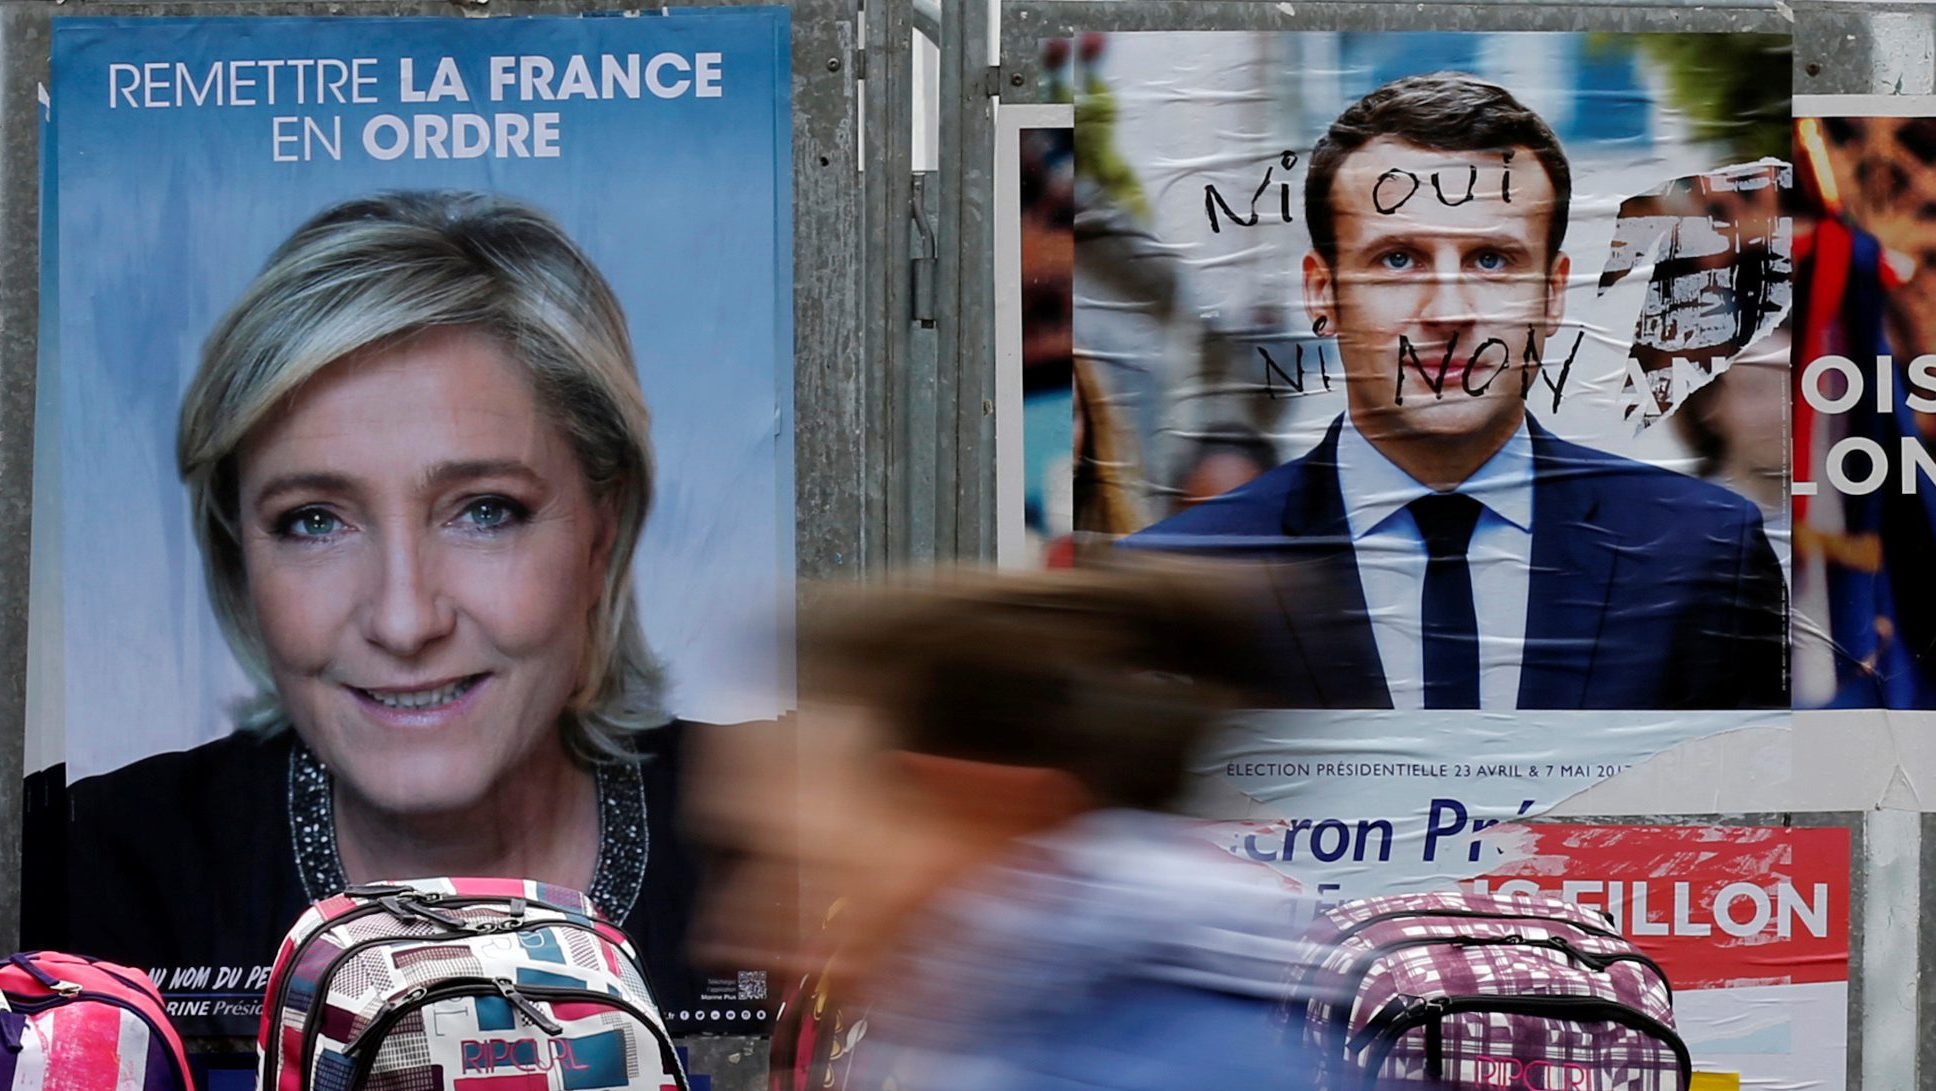 A woman walks past official posters of candidates for the 2017 French presidential election Marine Le Pen, French National Front (FN) political party leader (L) and Emmanuel Macron, head of the political movement En Marche !, or Onwards !, (R) on a local market in Bethune, France April 24, 2017.